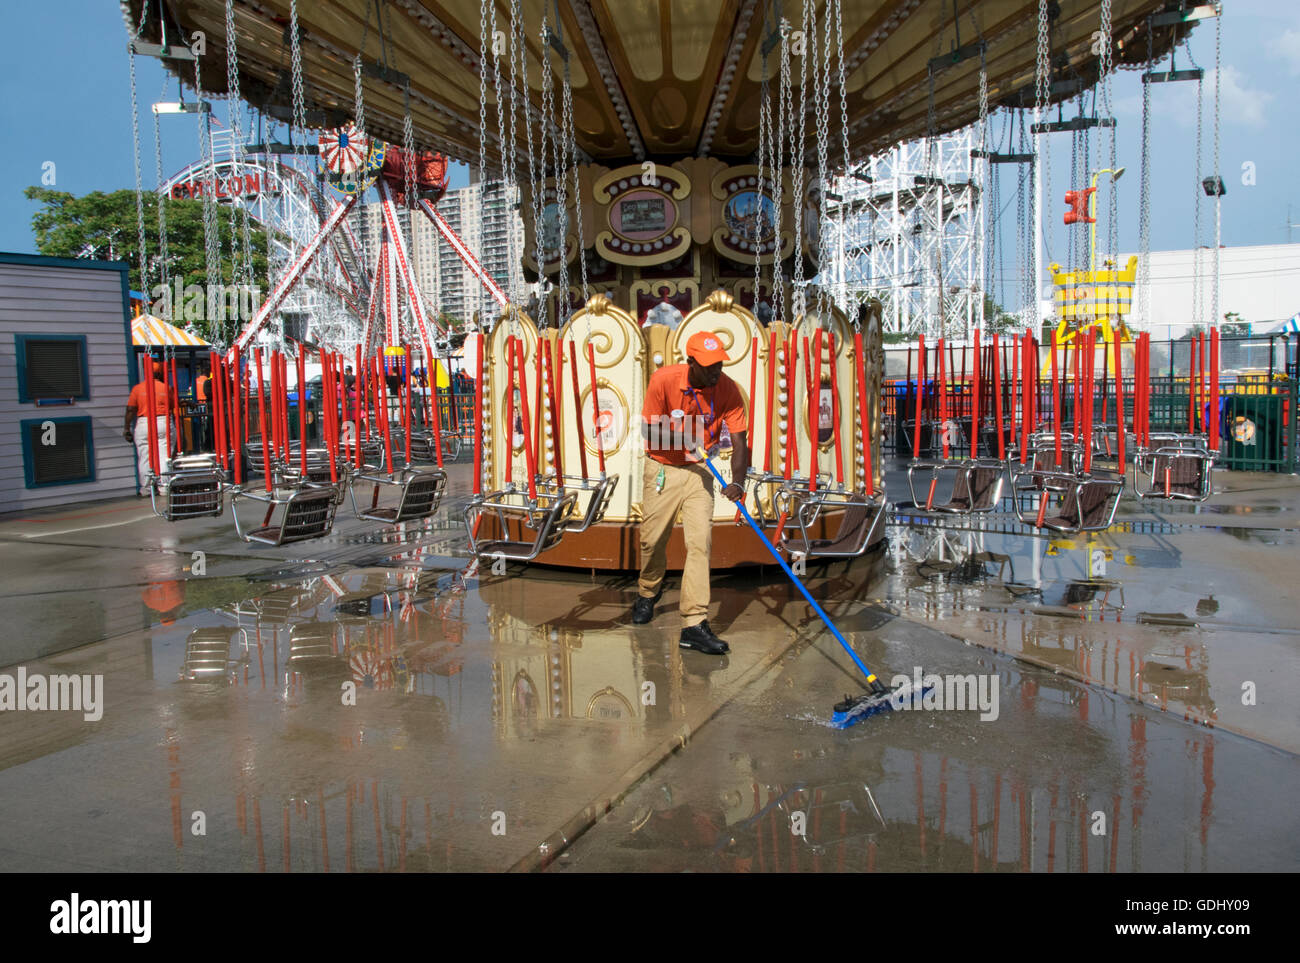 A worker clears puddles after a summer rain at Lynn's Trapeze, a ride in Luna Park in Coney Island, Brooklyn, - Stock Image